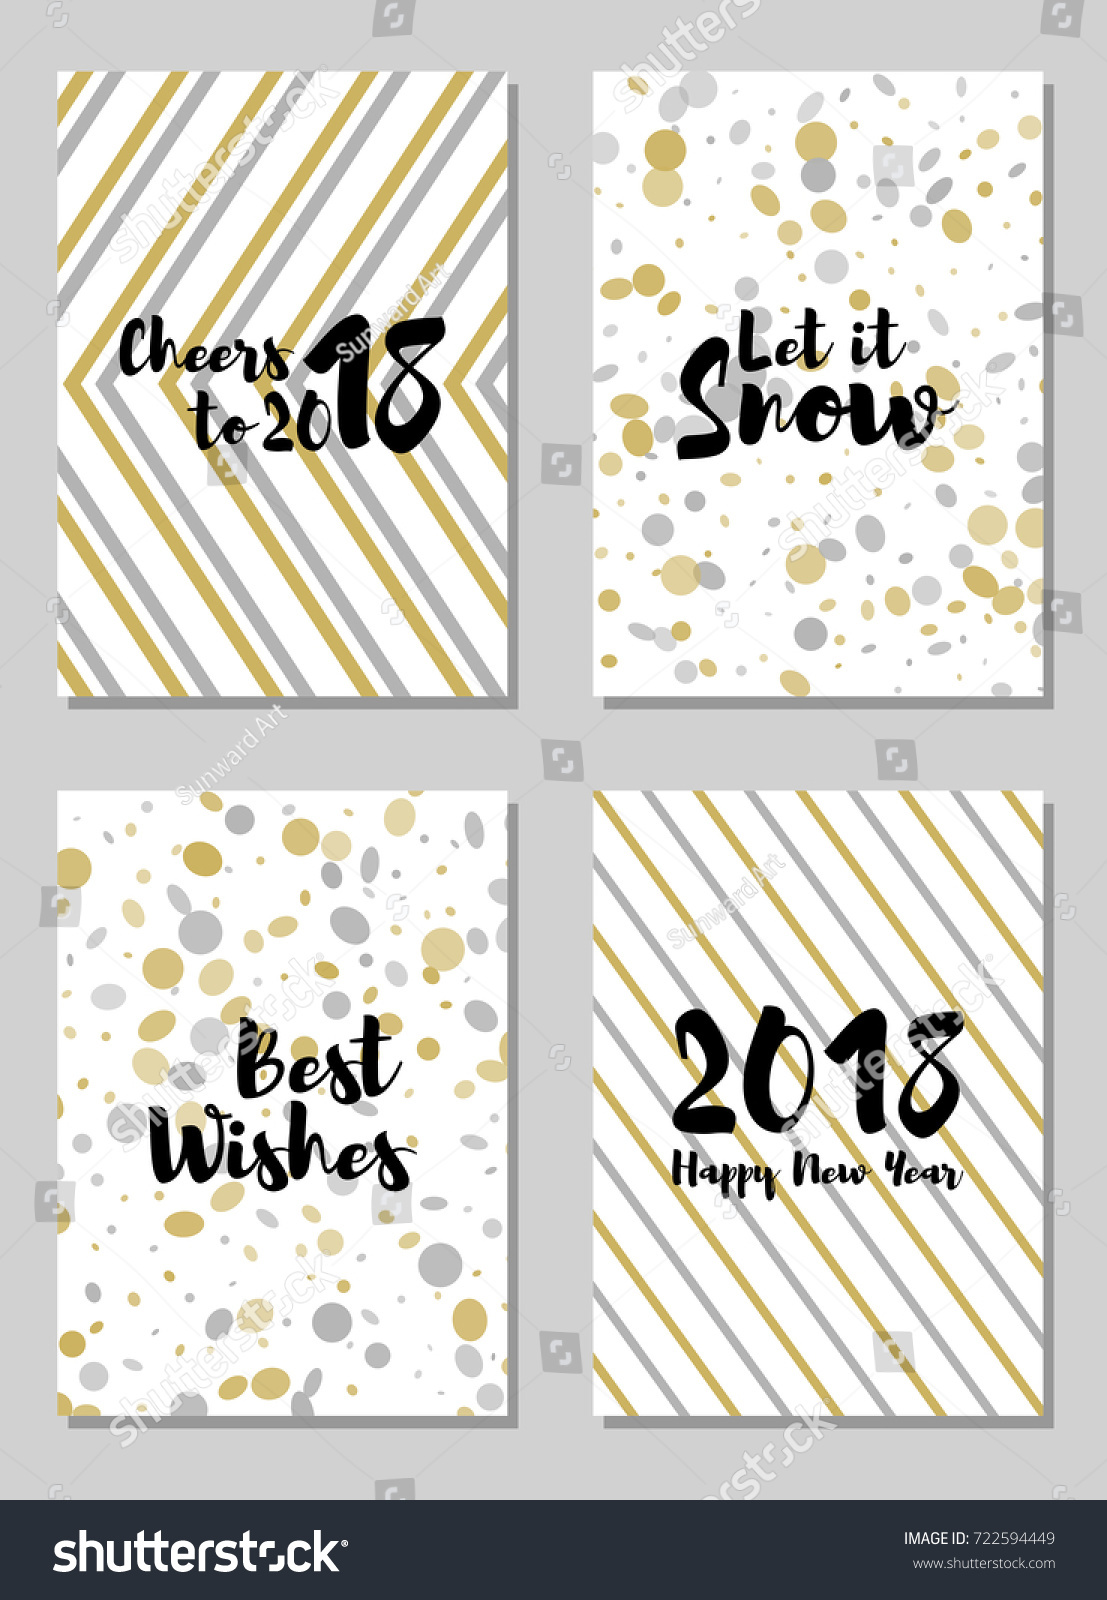 cheers to 2018 new year best wishes greeting cards vector collection holiday postcards set